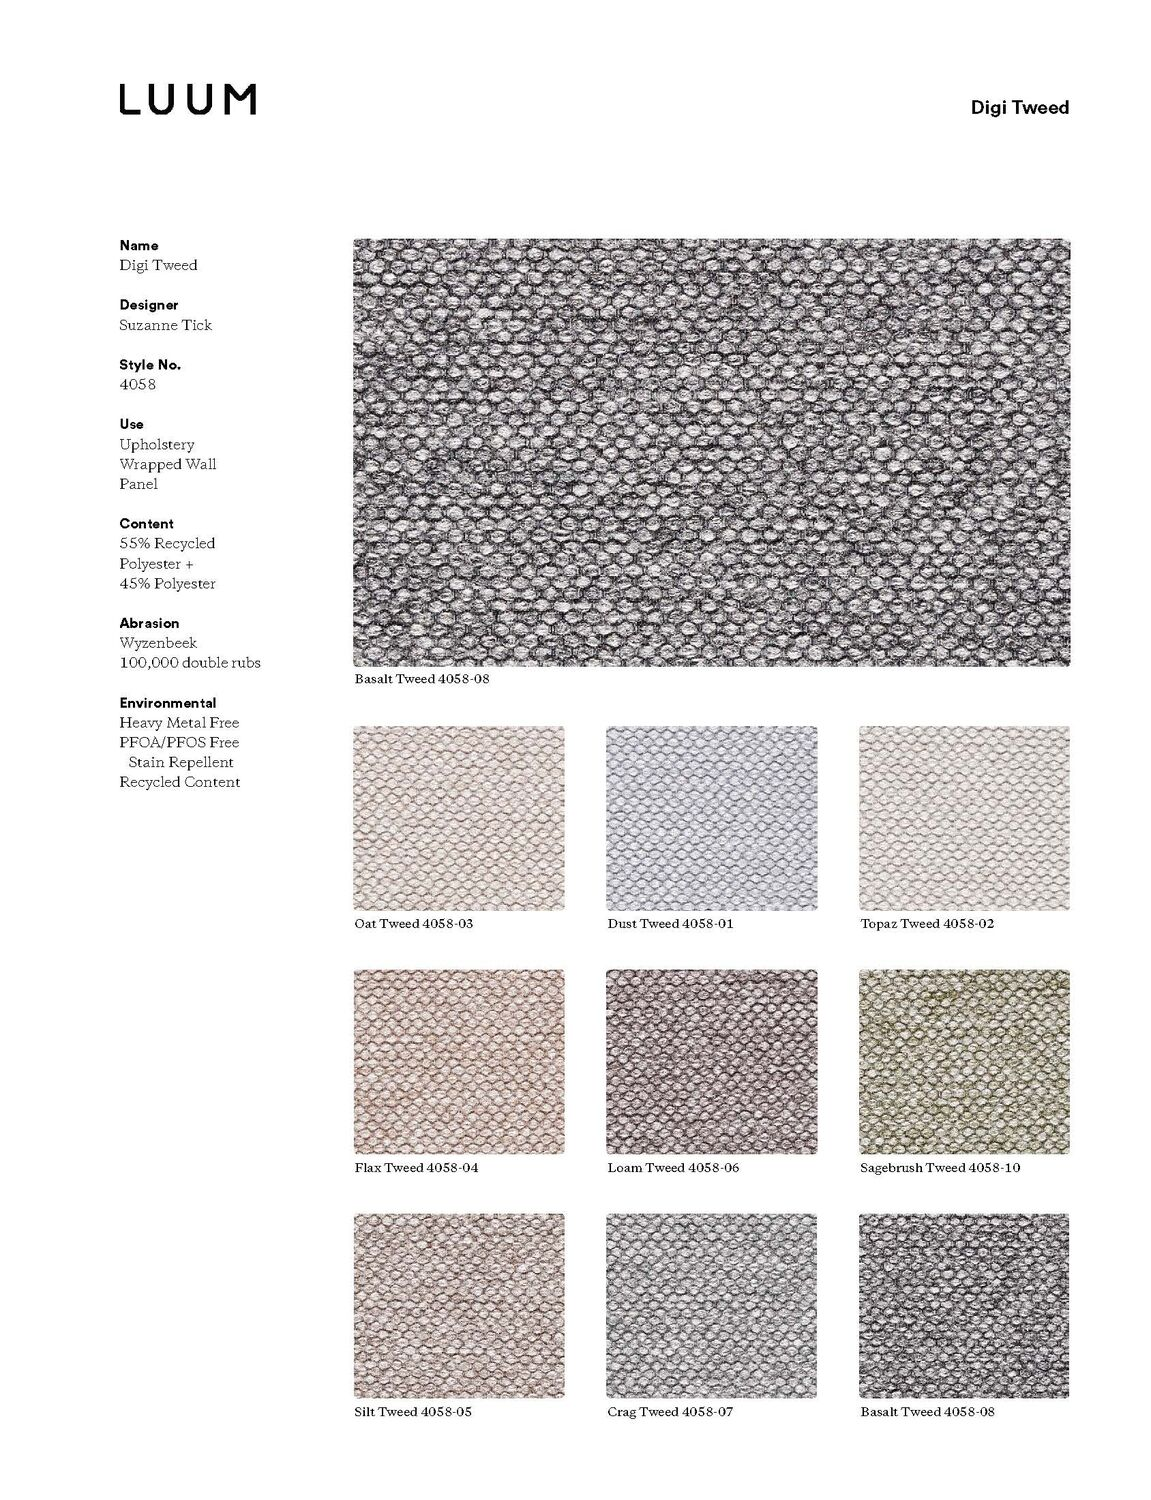 Digi Tweed - Basalt Tweed - 4058 - 08 Sample Card